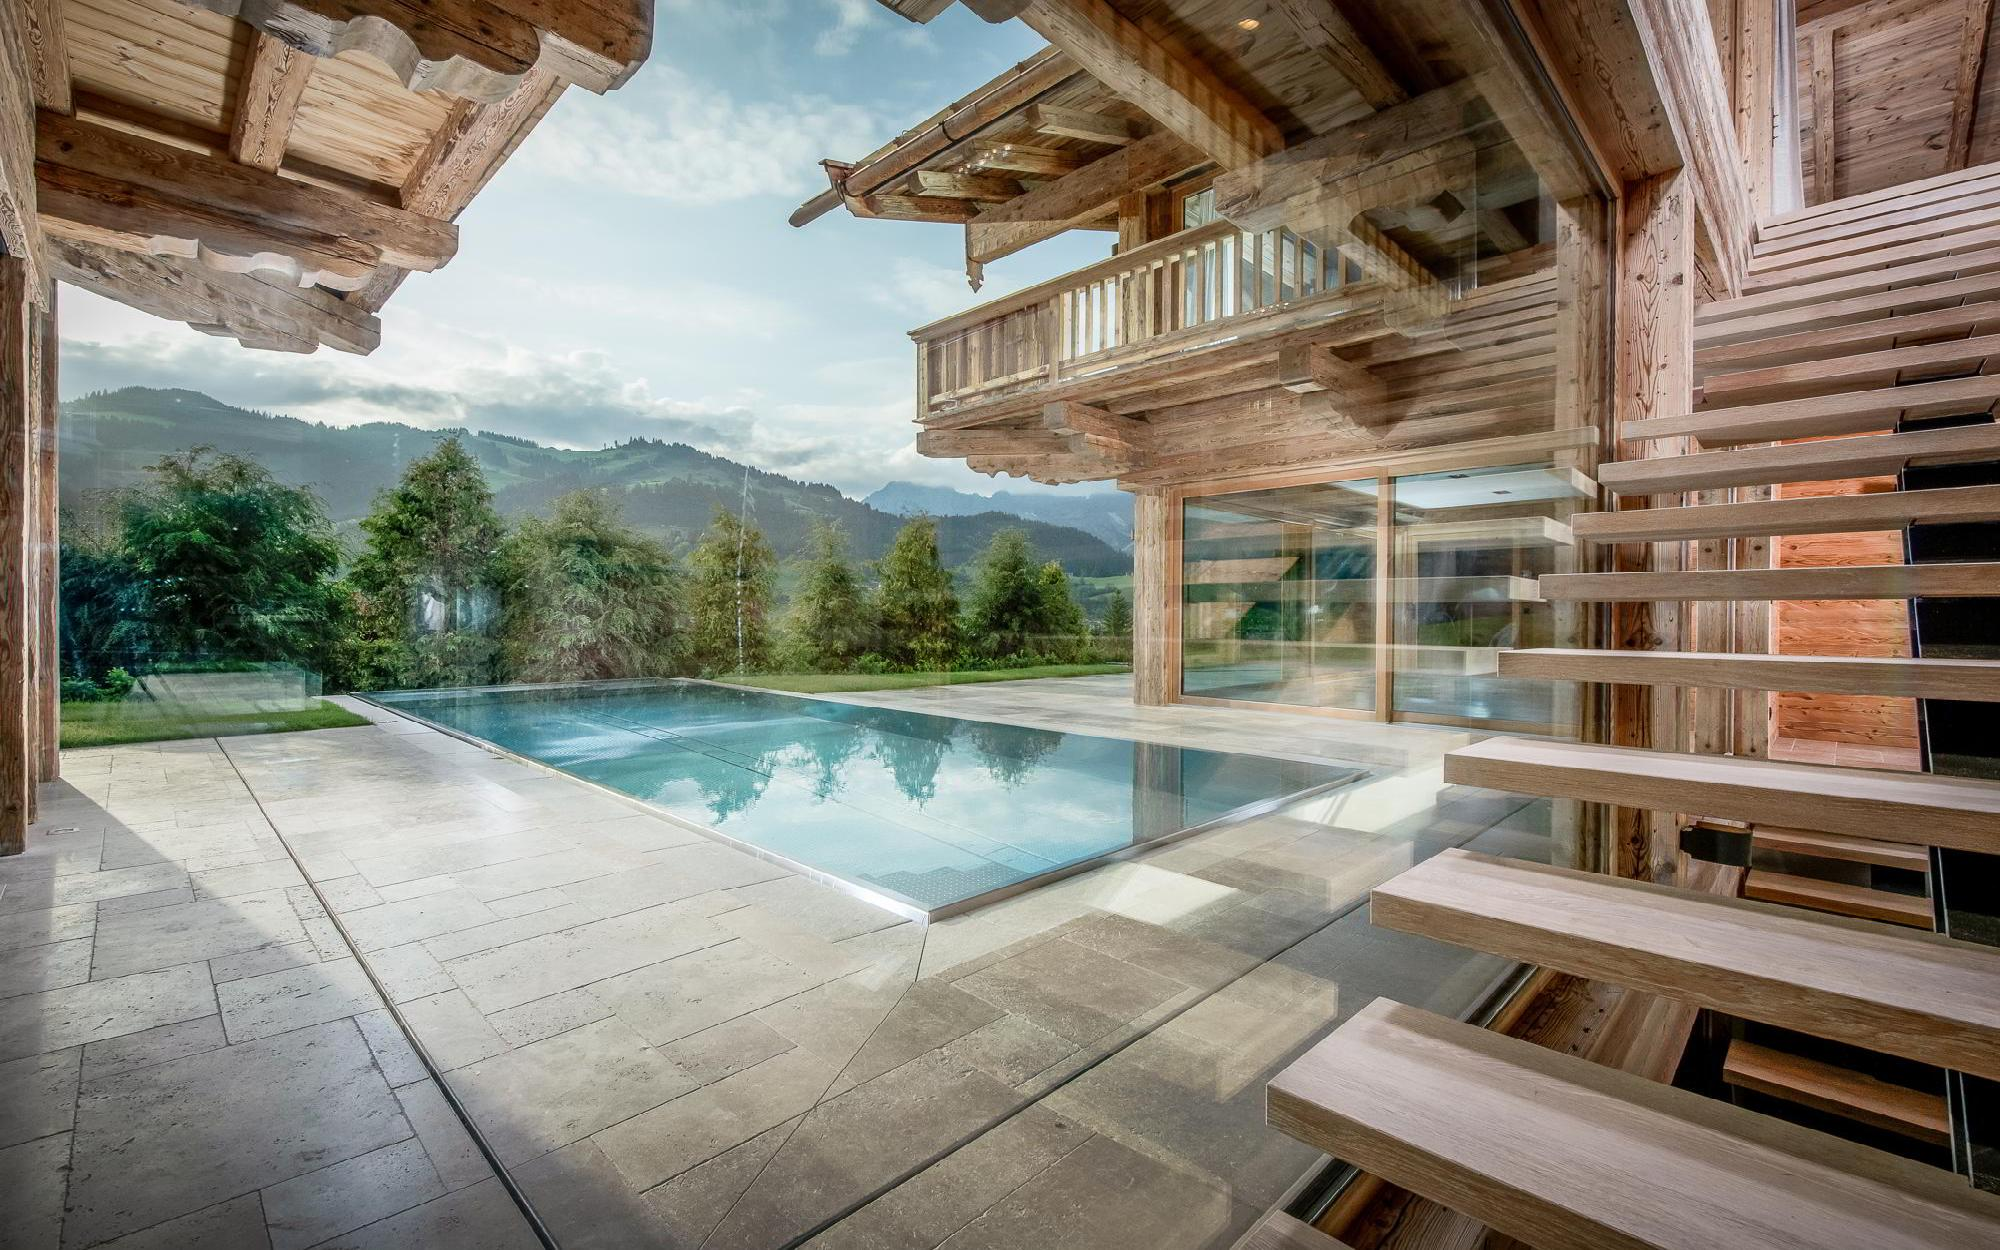 Luxury Designer Chalet in famous Alpine region SOLD - Austria - Tirol